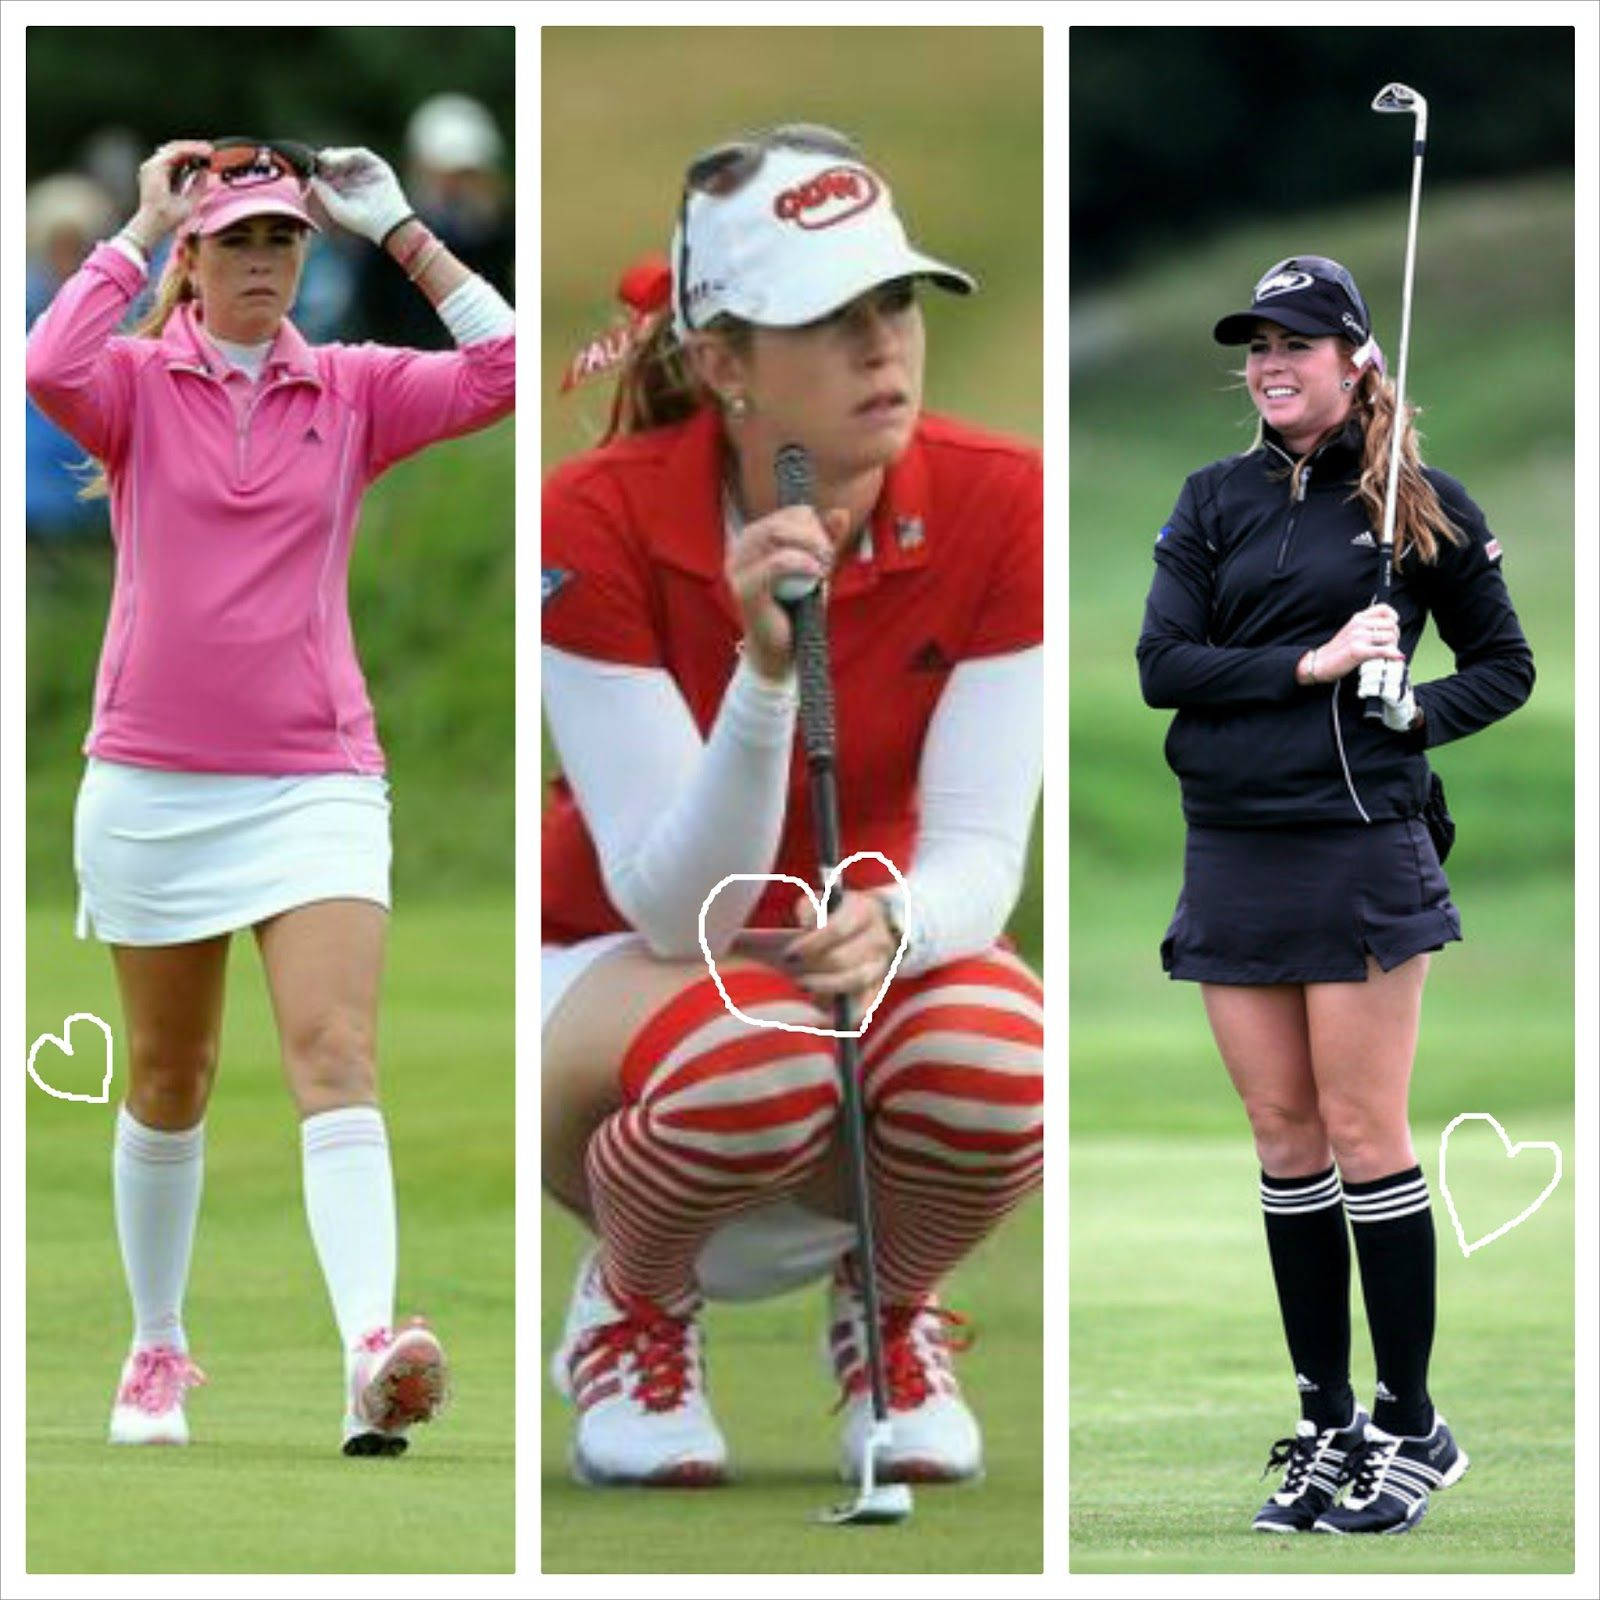 Gals Who Golf | Modern Women's Golf Clothing + Product Review: LPGA LOOKS  WE LOVE